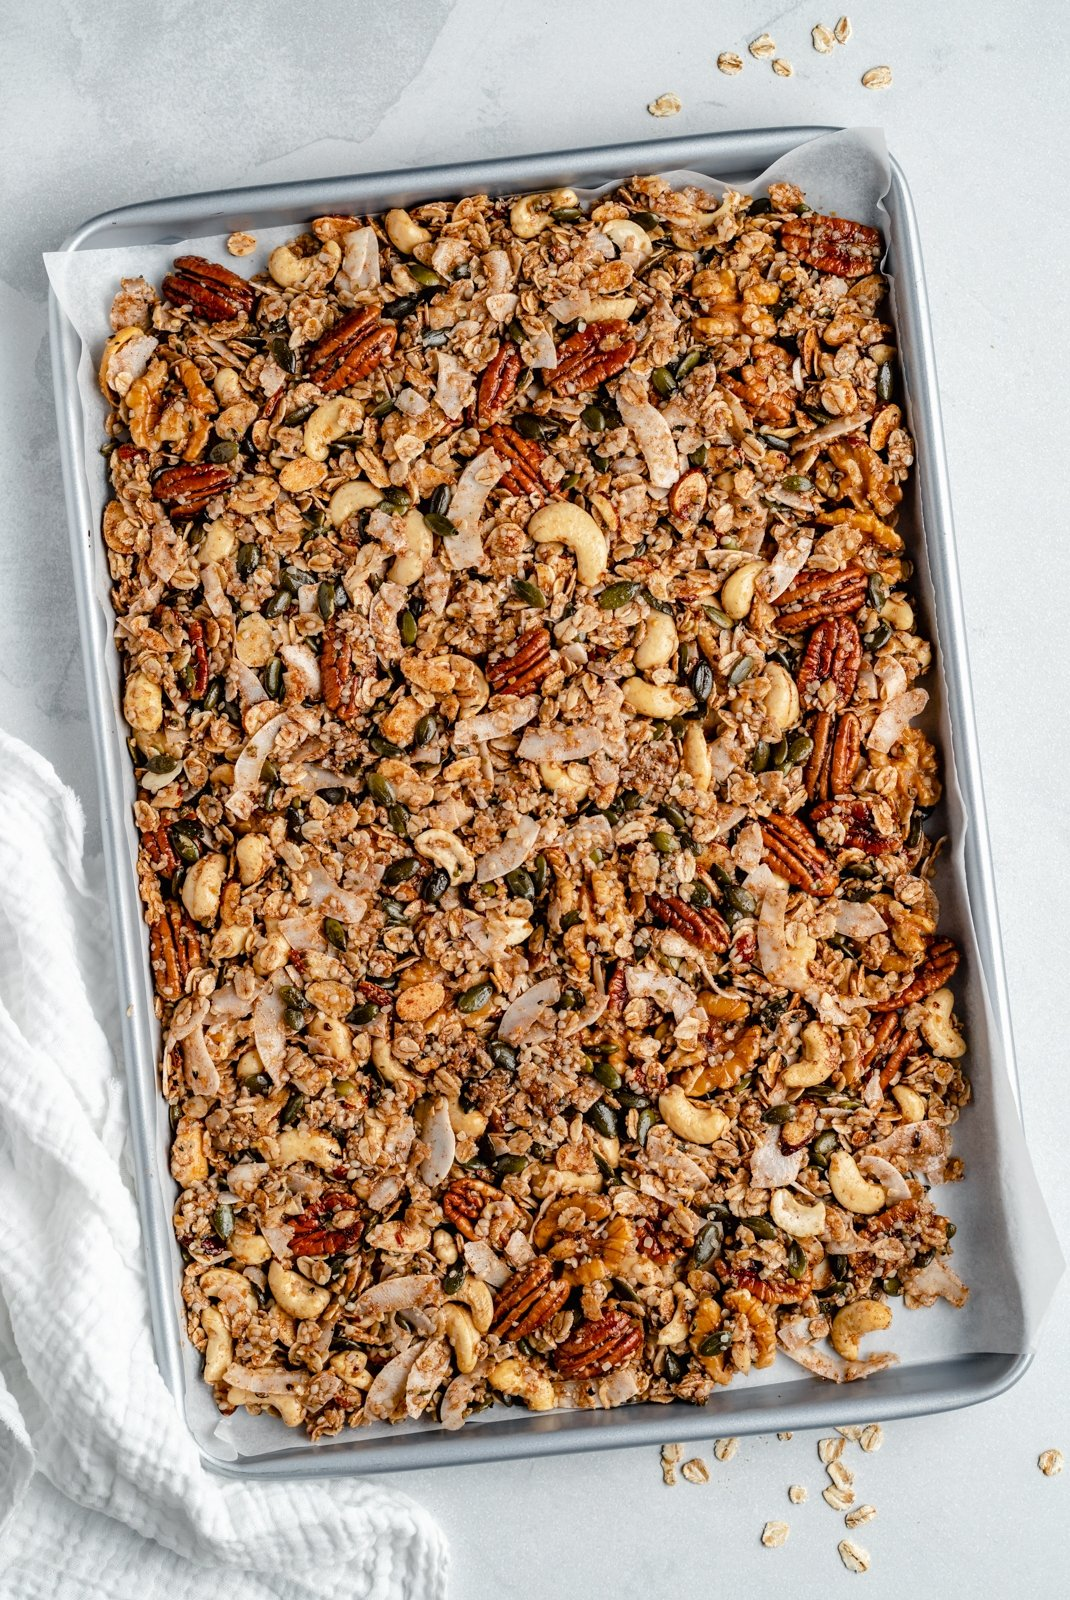 nut and seed granola on a baking sheet